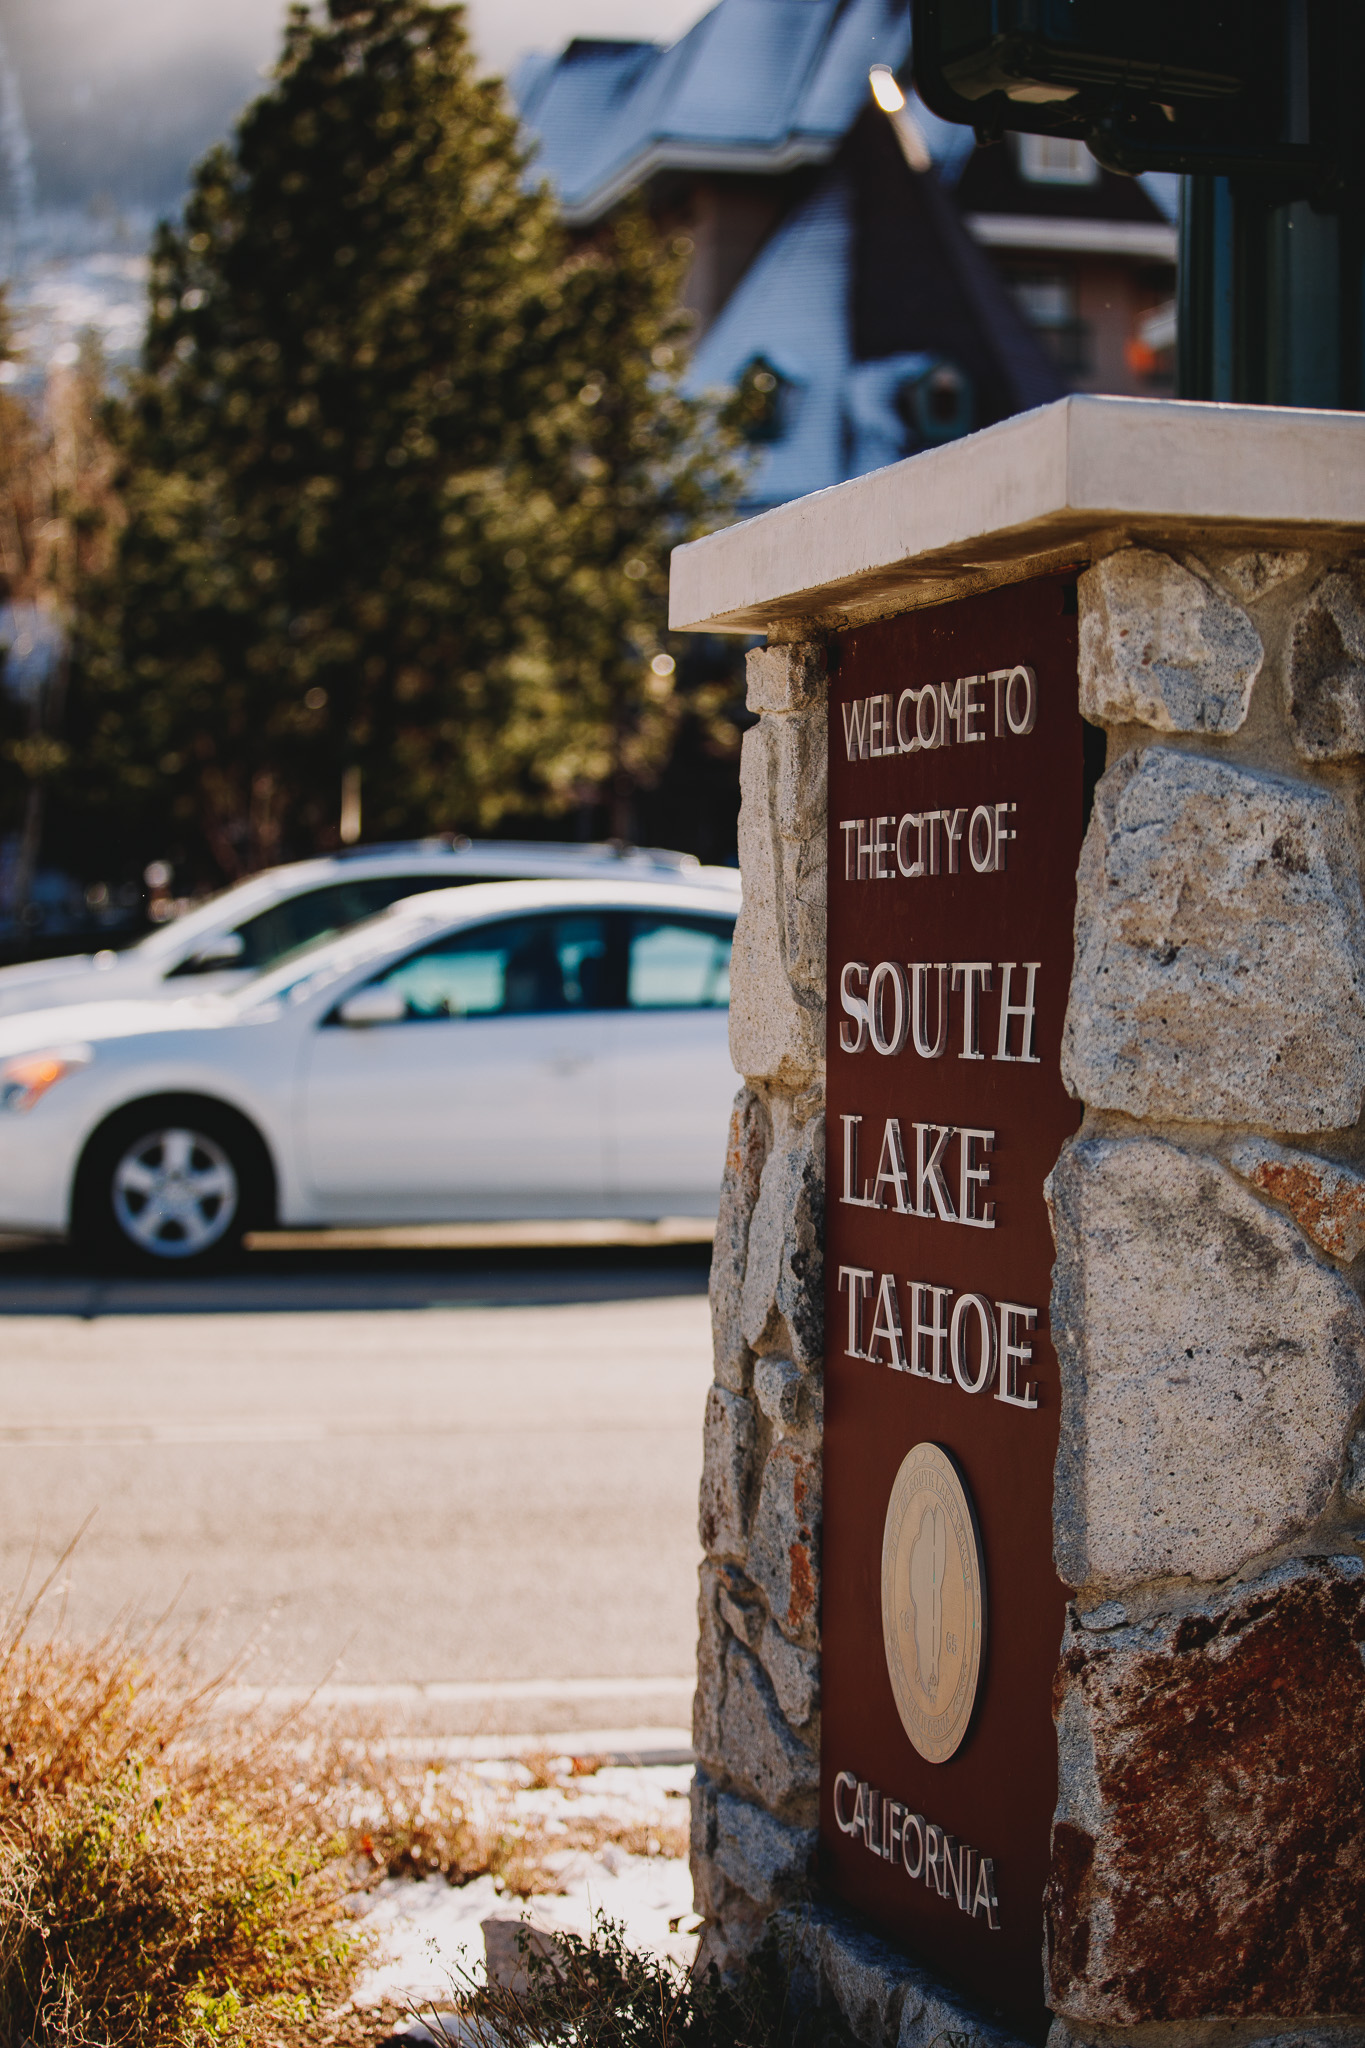 Archer Inspired Photography Family Road Trip Lifestyle Photos NorCal Sacramento South Lake Tahoe Reno Truckee Documentary Memories-168.jpg